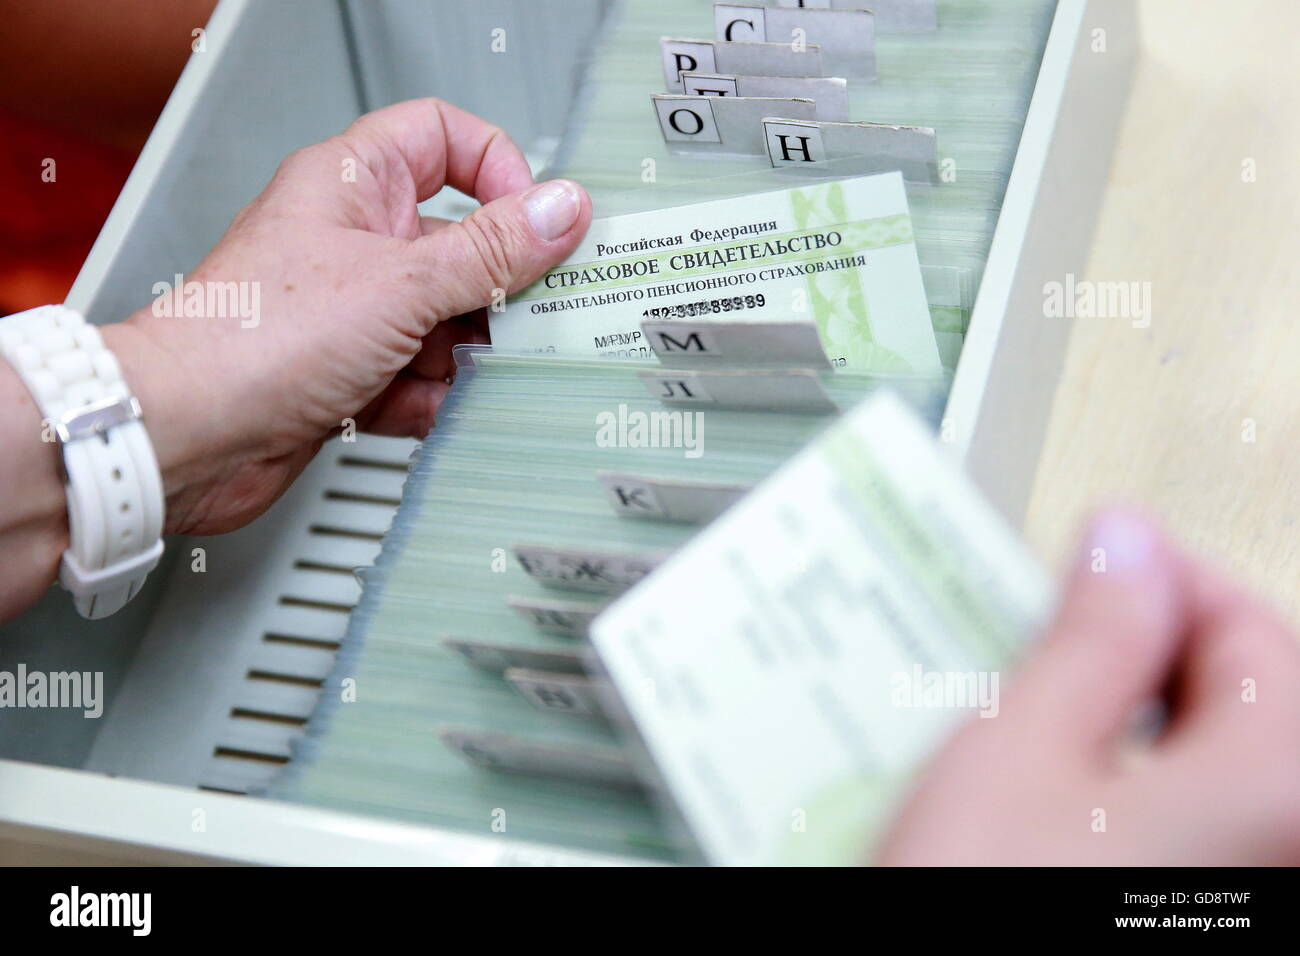 MOSCOW, RUSSIA – 13 JULY, 2016: The box with pensioners' identity cards is seen in an office of the Pension - Stock Image